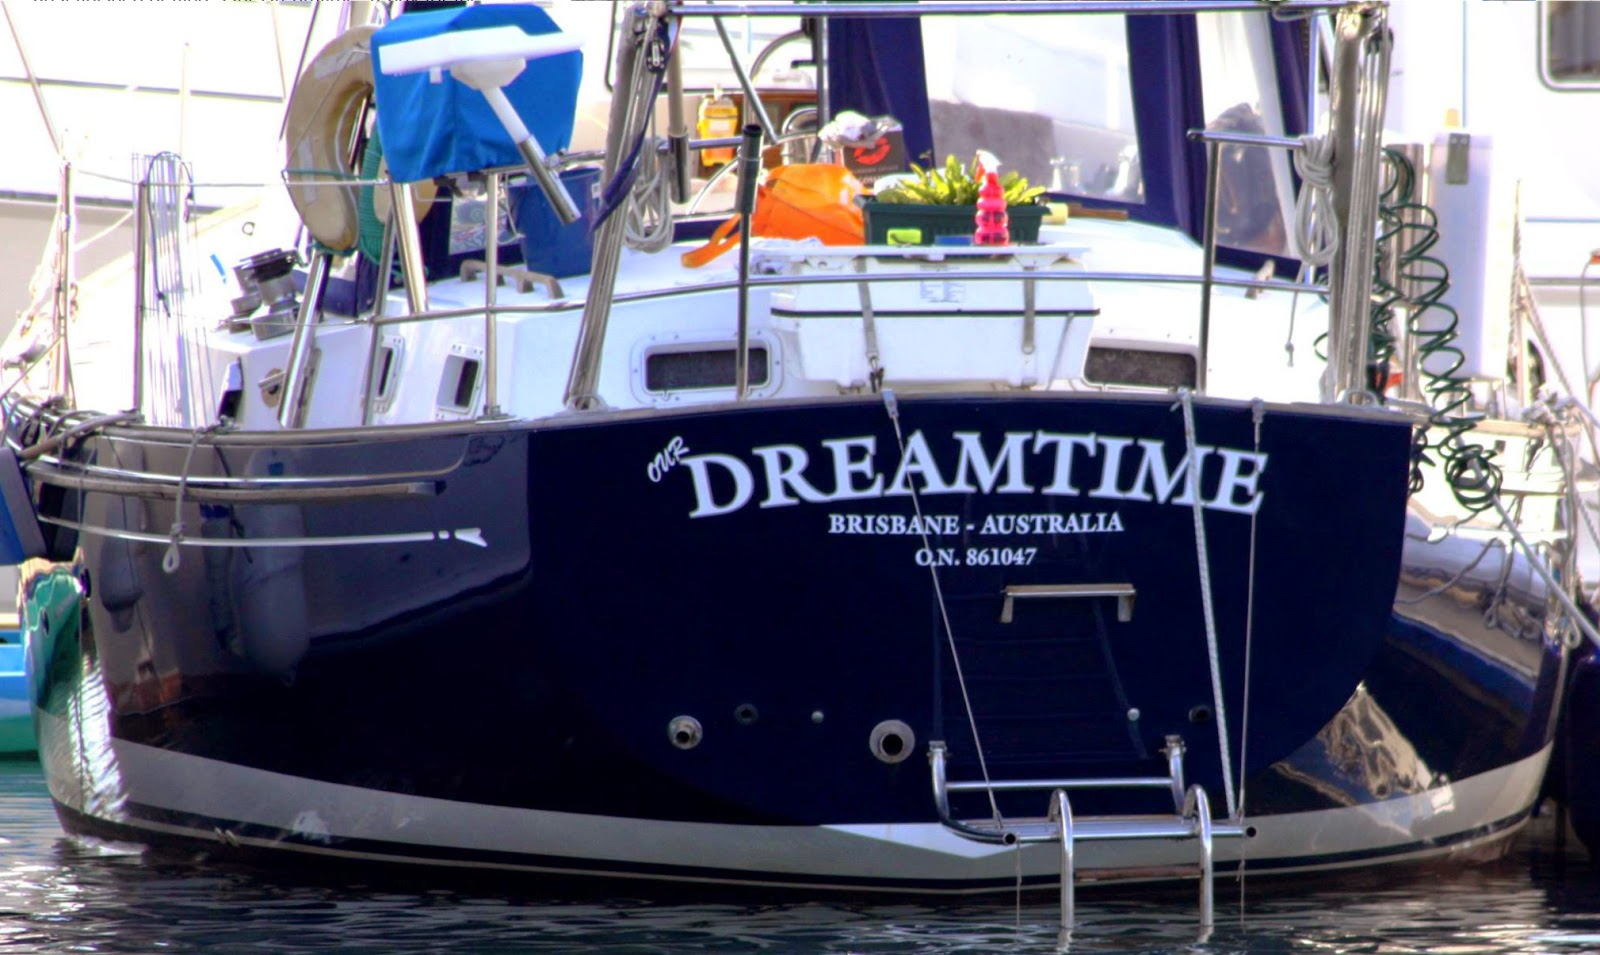 Dreamtime Sail Boat Maintenance A Check List To Getting You Maclube Electric Fuel Pump Instruction Sheet Started On Your Schedule